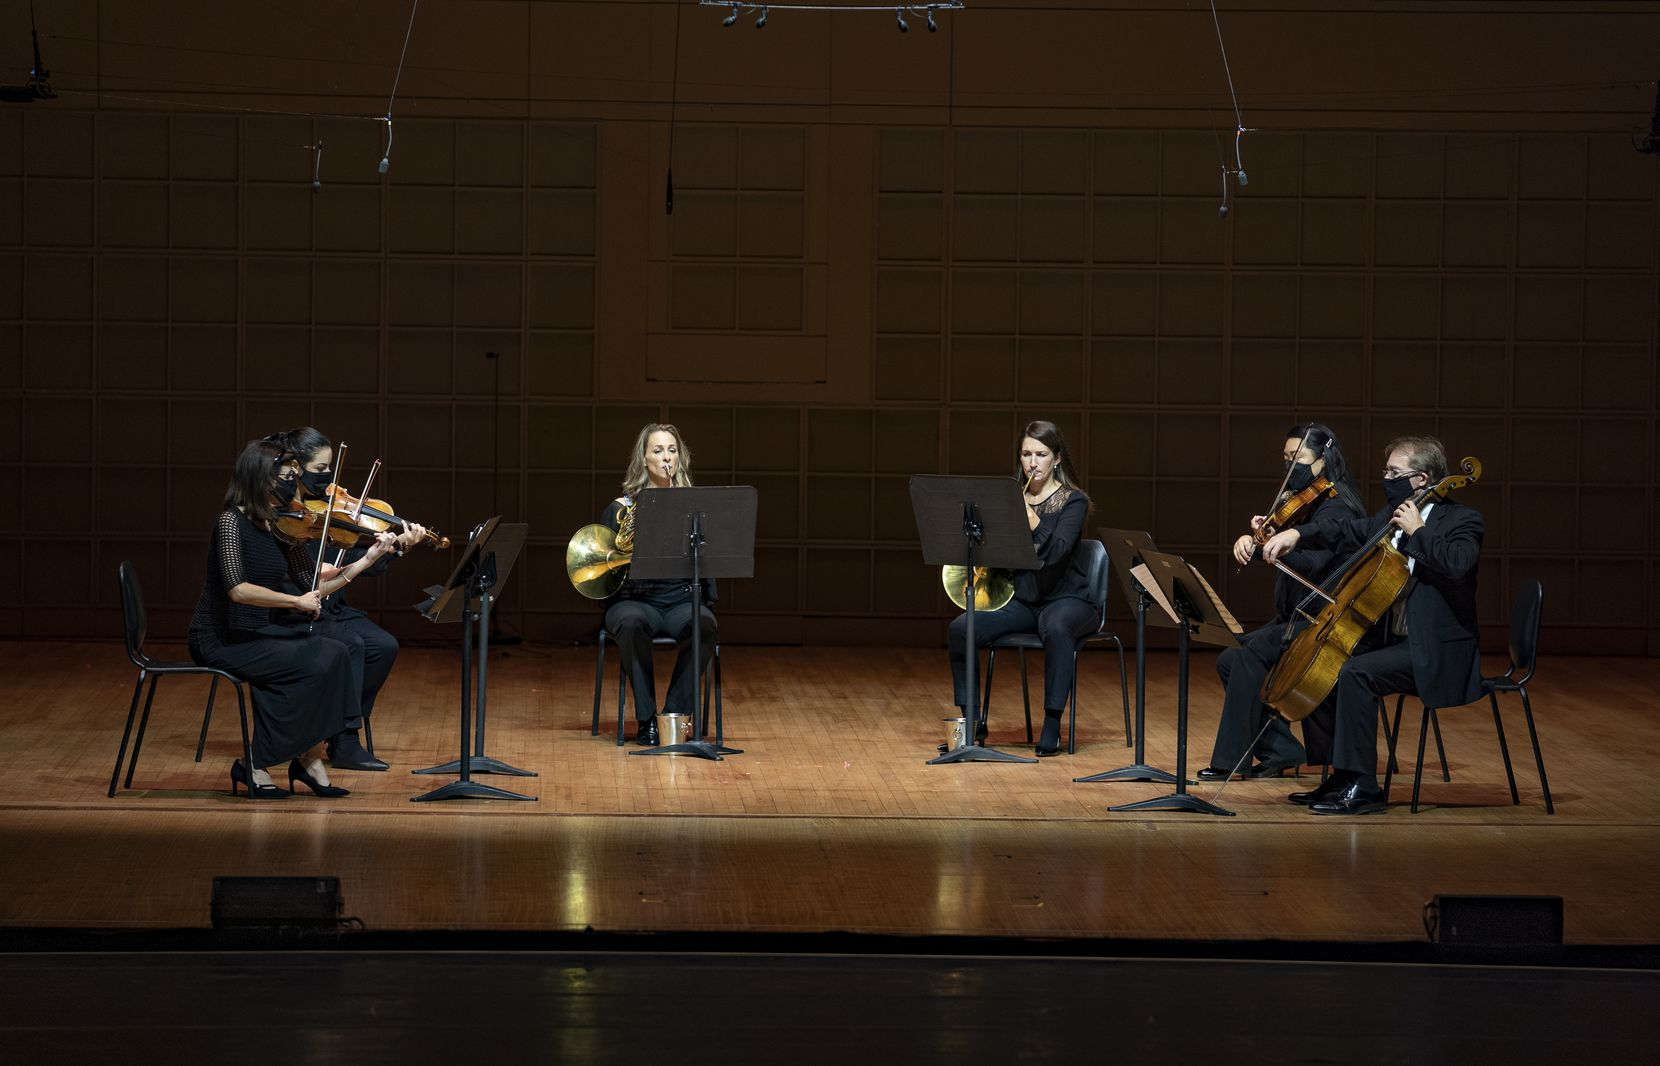 Maria Schleuning (violin), Jenna Barghouti (violin), Haley Hoops (horn), Jaclyn Rainey (horn), Christine Hwang (viola) and Jolyon Pegis (cello) perform Beethoven's Sextet for Horns and String Quartet during the Women in Classical Music Chamber Concert at the Meyerson Symphony Center in Dallas on Nov. 9.